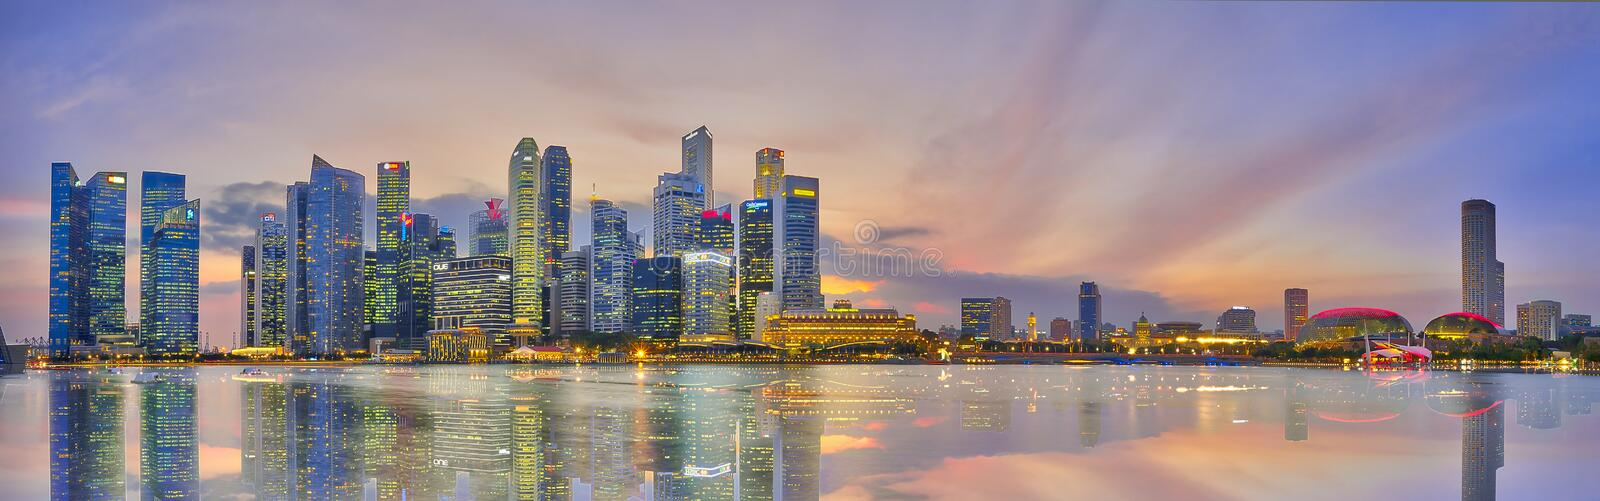 Evening skyline of Singapore Financial District royalty free stock photography